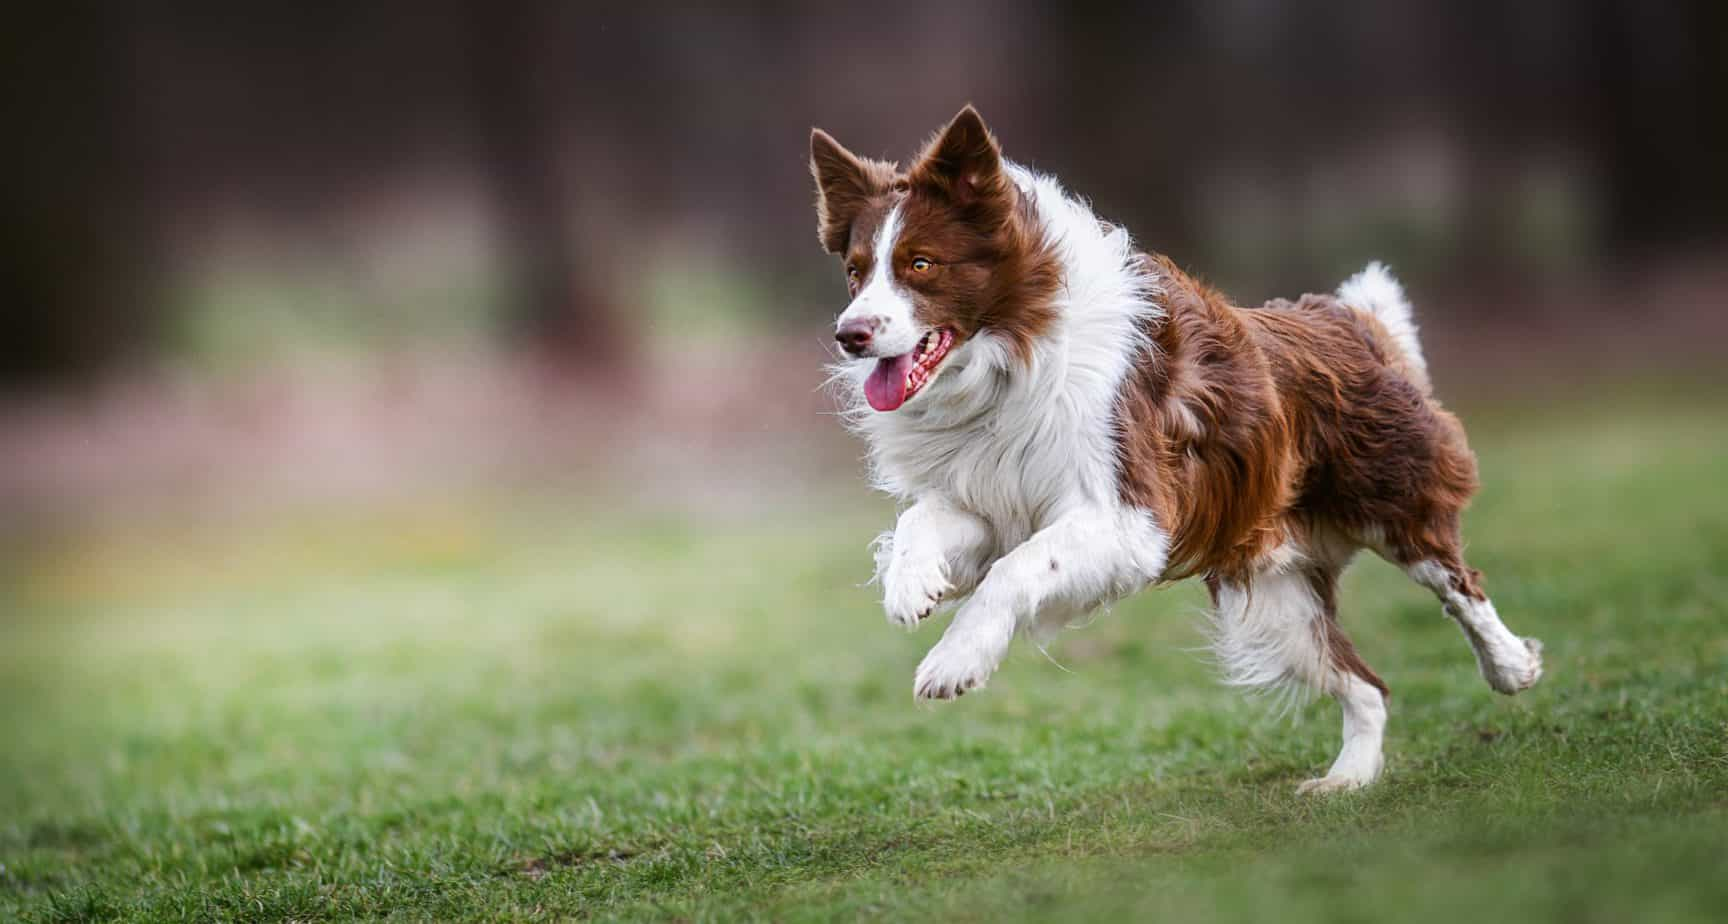 Happy border collie runs across yard. Make sure your dog gets enough outdoor time and exercise. Movement and activity are incredibly important, if not only for your dog's physical health but also their mental well being and behavior.